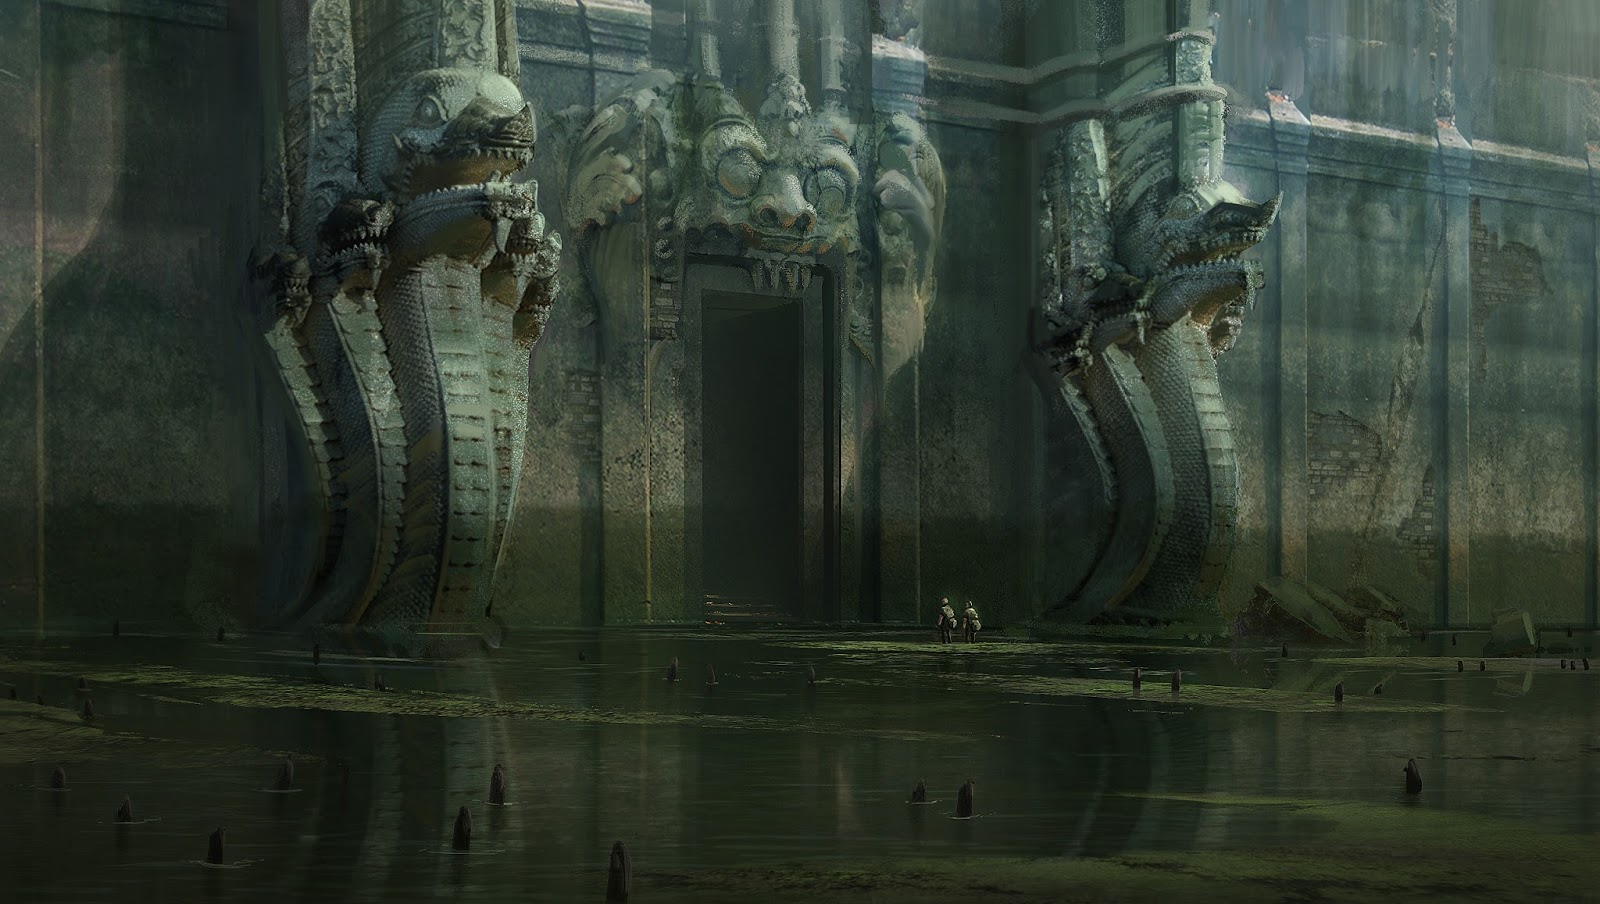 Nick Gindraux Digital Painting Concept art Temple in the Marshes